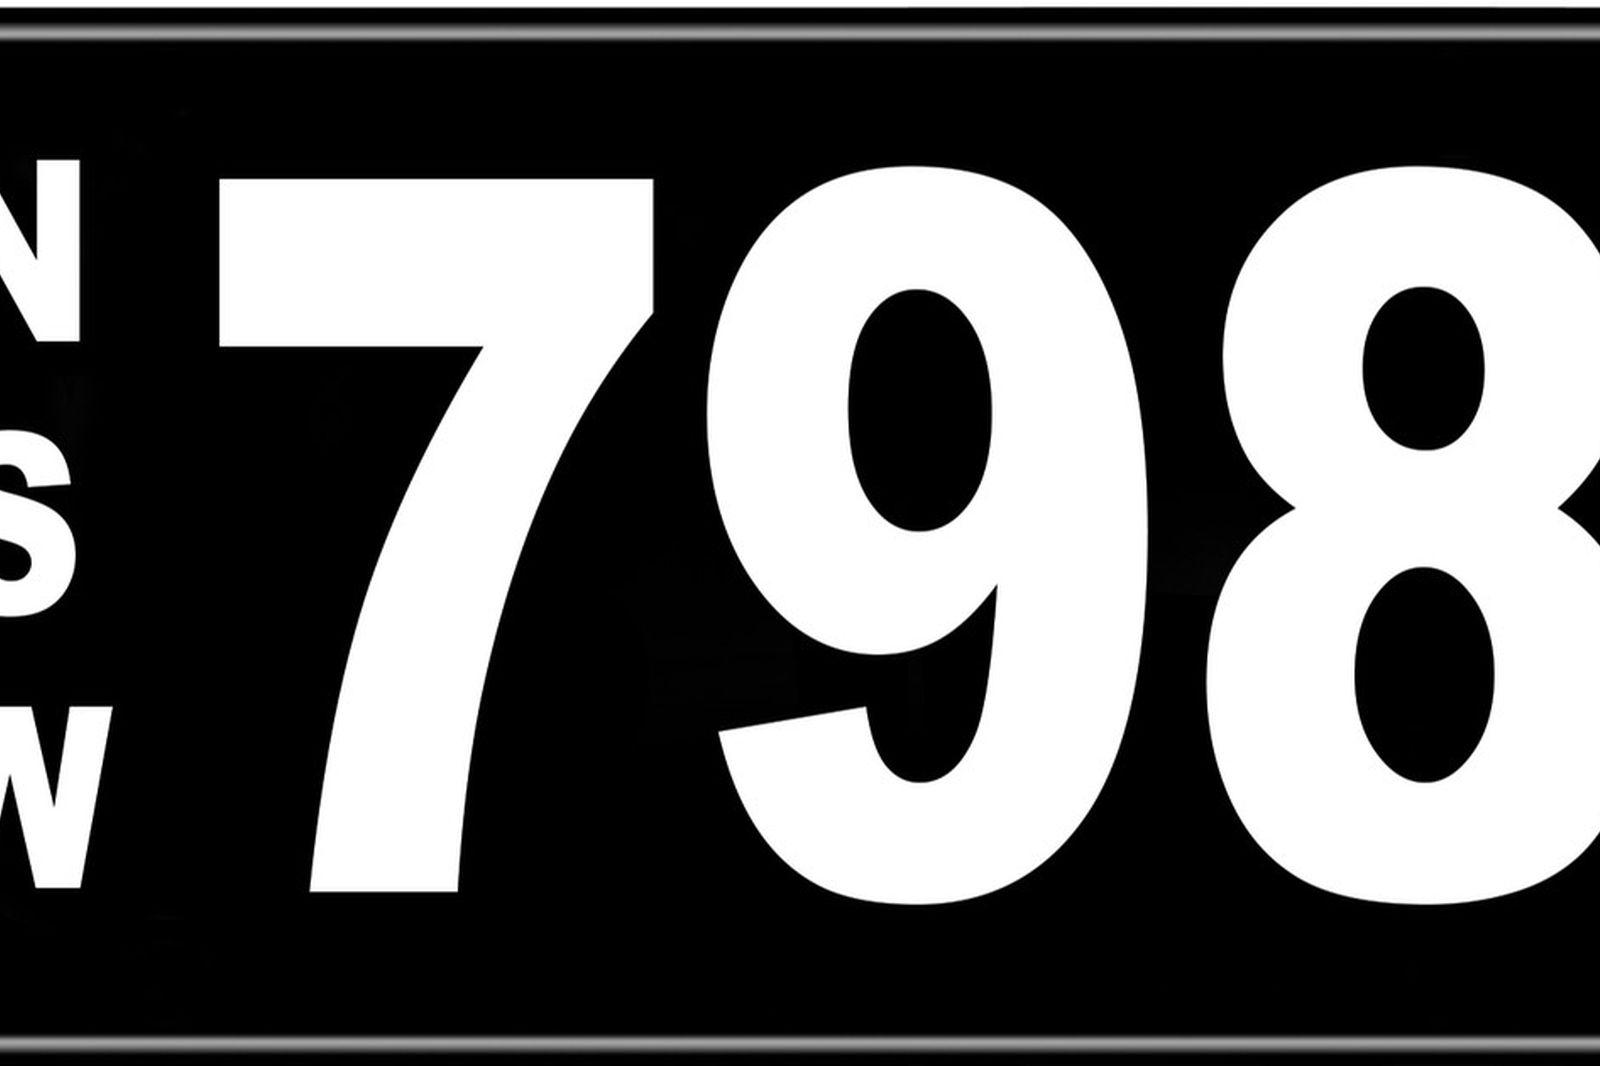 Number Plates - NSW Numerical Number Plates '798'